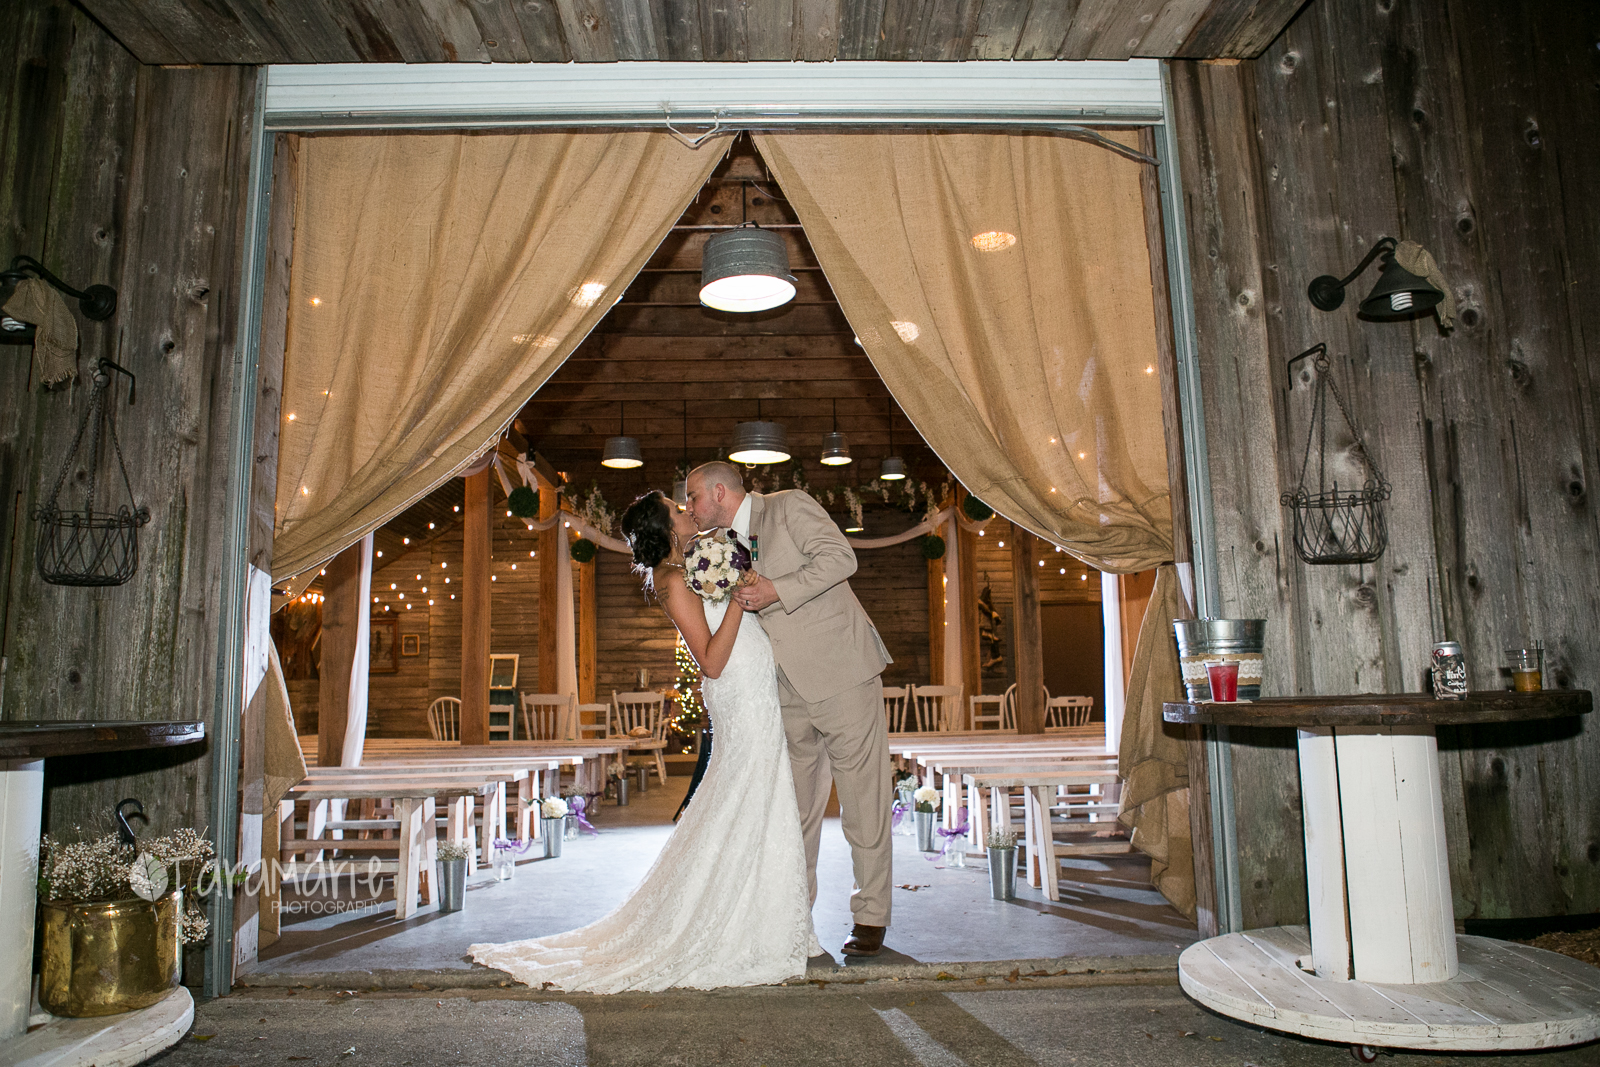 Long While To Photograph At Ashley Manor And My First Their Barn If You Re Looking For A Wedding In The Baton Rouge Area This Was So Pretty